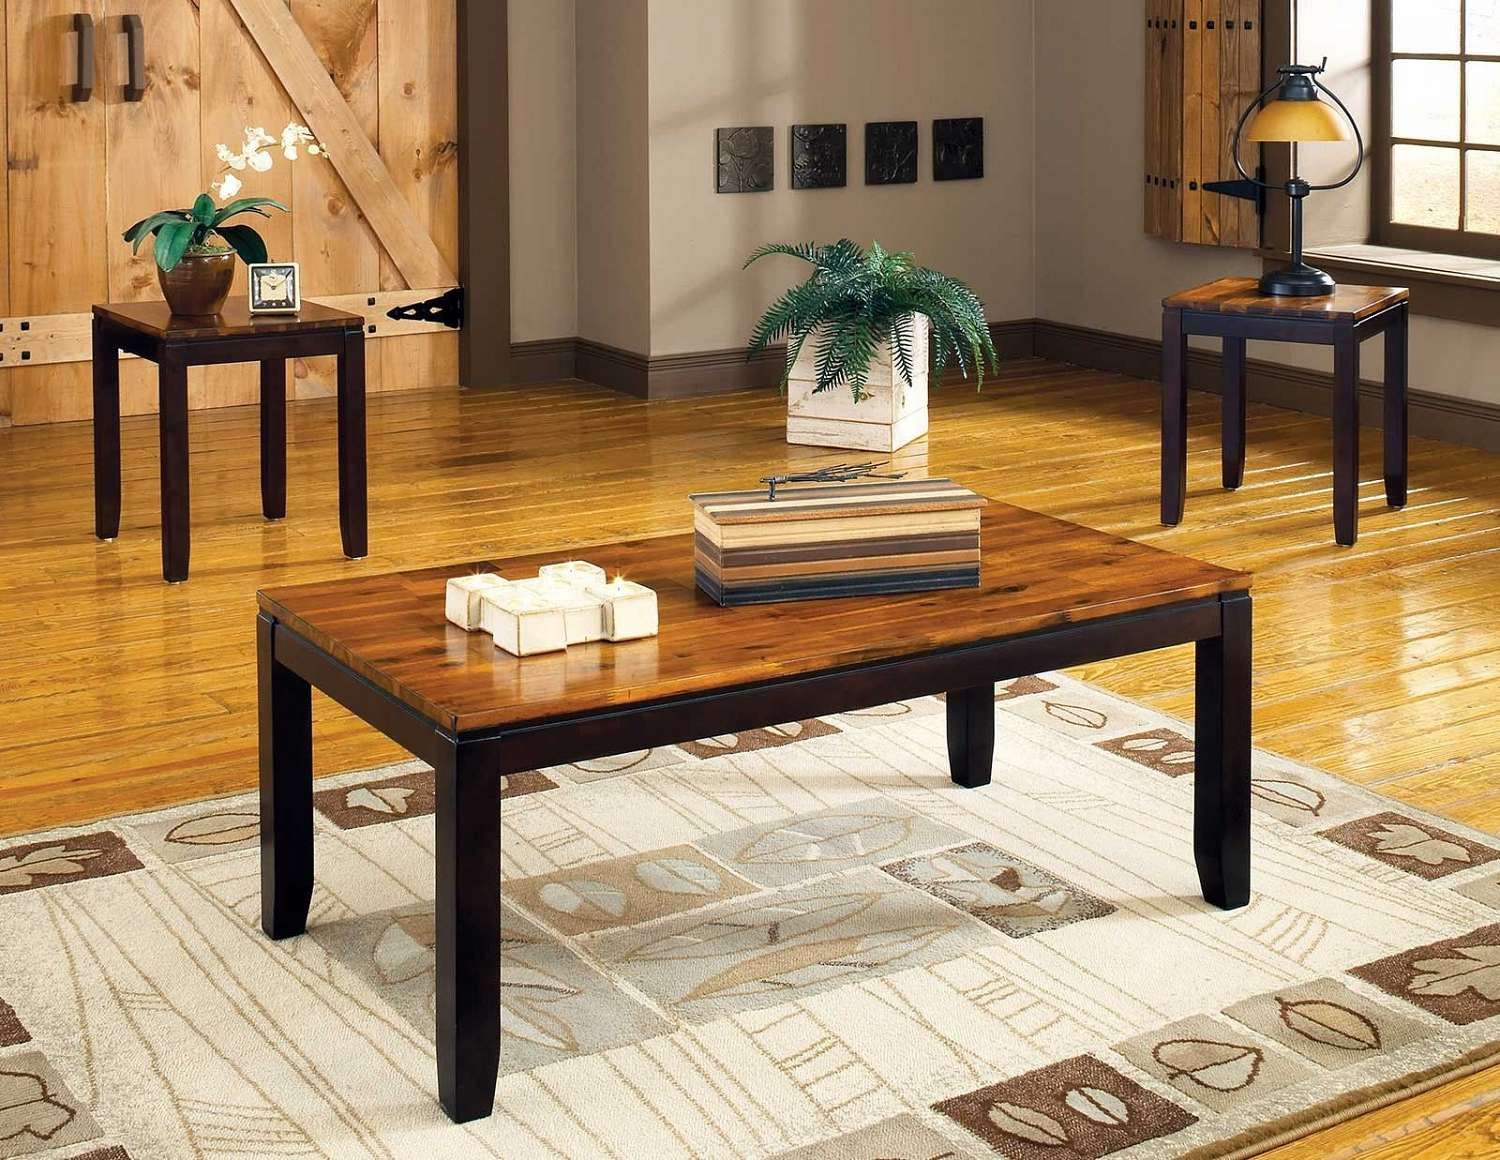 3 Piece Table Set For Living Room Furniture Made In Turkey 2 Designer Ffo Home Coffee Accent Tables